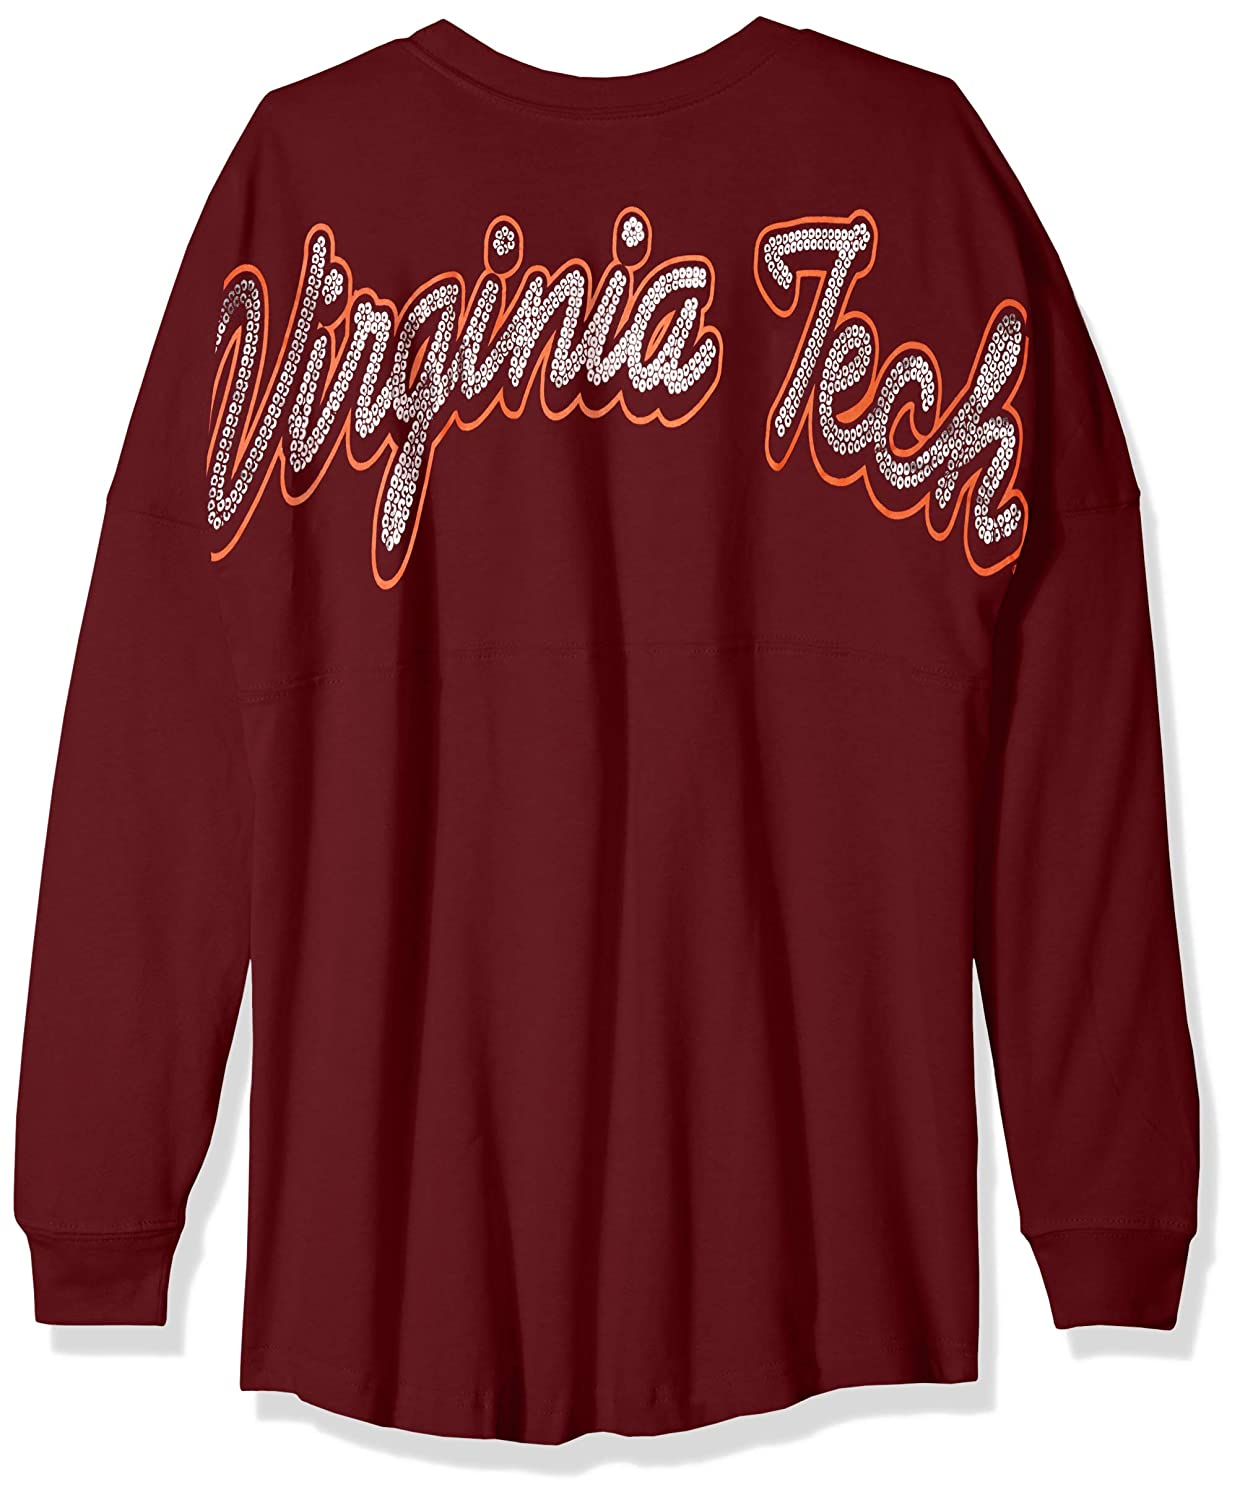 X-Small NCAA Virginia Tech Hokies Womens NCAA Womens Long Sleeve Mascot Style Teeknights Apparel NCAA Womens Long Sleeve Mascot Style Tee Maroon